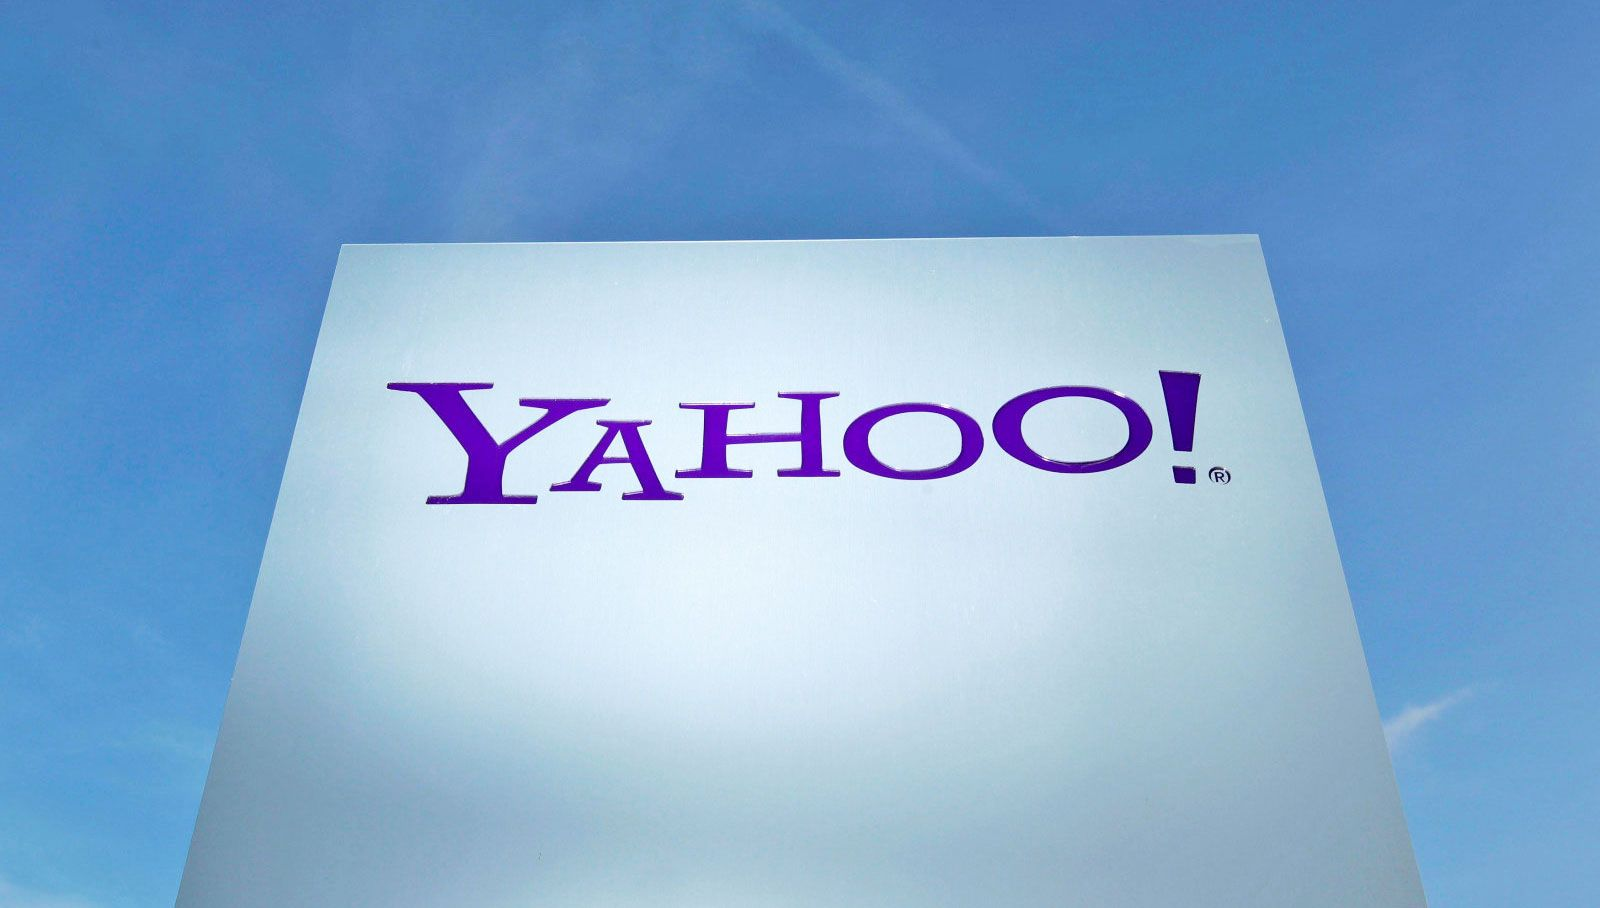 Silicon Valley bro sues Yahoo for reverse discrimination - https://www.aivanet.com/2016/10/silicon-valley-bro-sues-yahoo-for-reverse-discrimination/